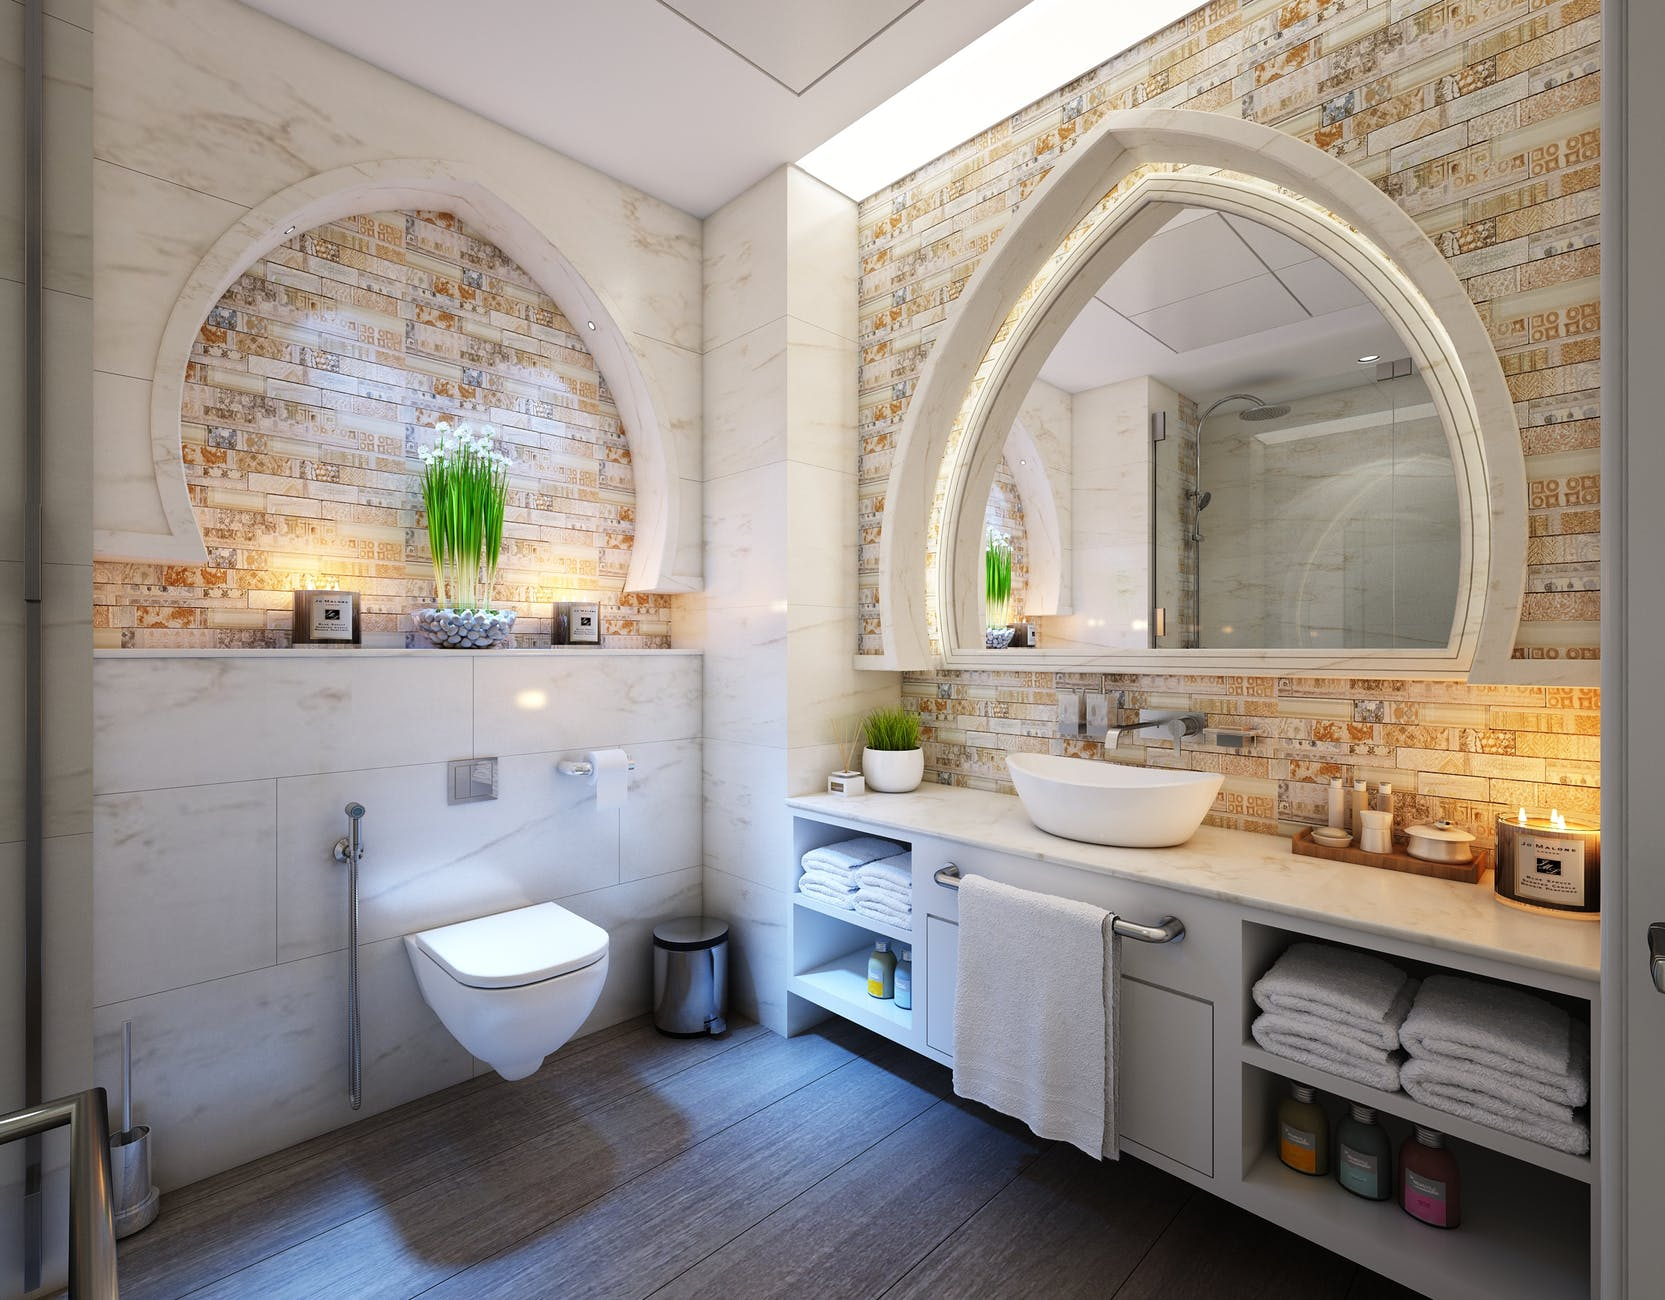 Let There Be Space: 7 Ways to Add Space to Your Small Bathroom ...